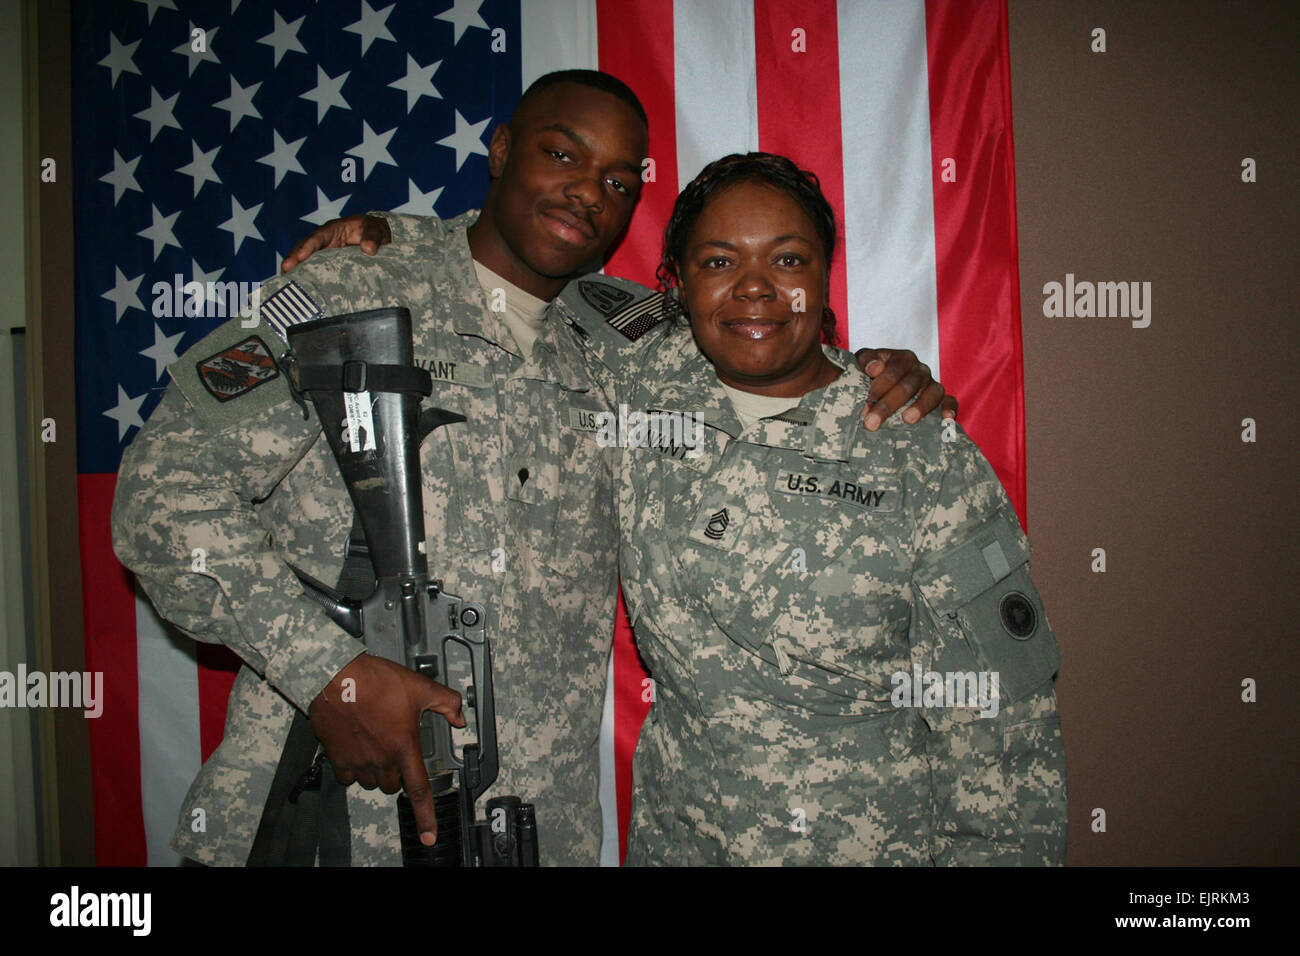 CAMP ARIFJAN, Kuwait – On a surprise trip from Iraq, 19-year-old Spc. Anthony W. Avant, Jr. visited his mother, Stock Photo